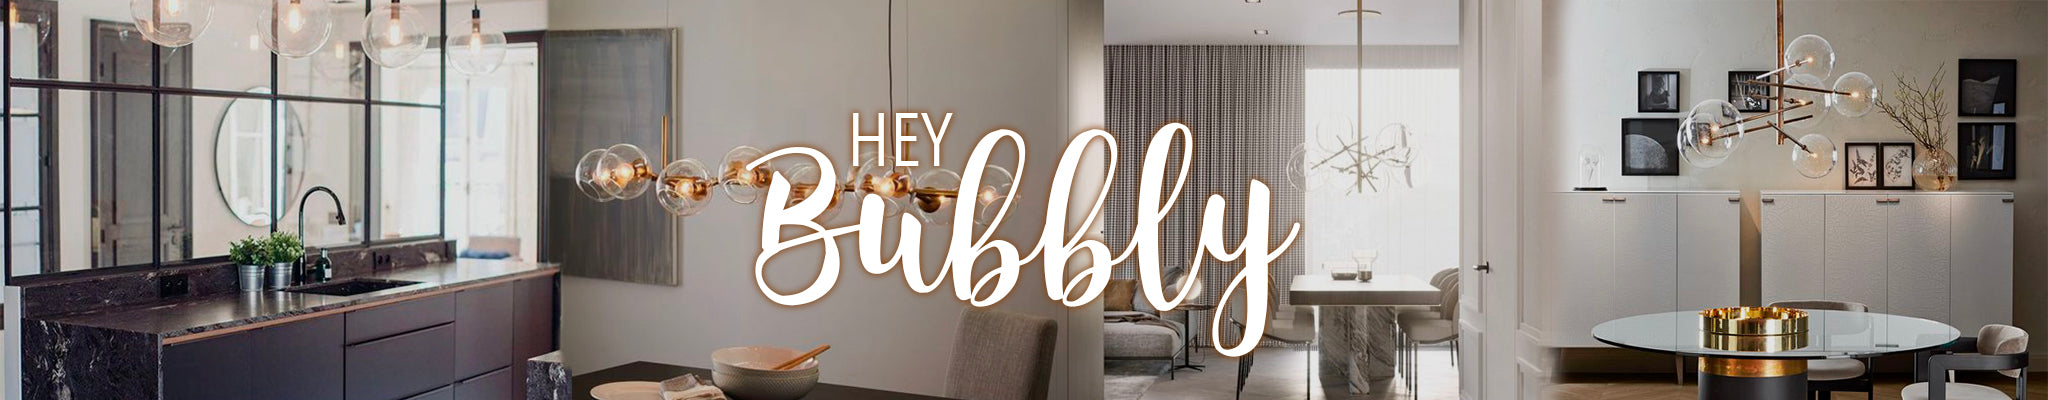 Hey Bubbly Collection Home Cartel Modern Lighting Philippines